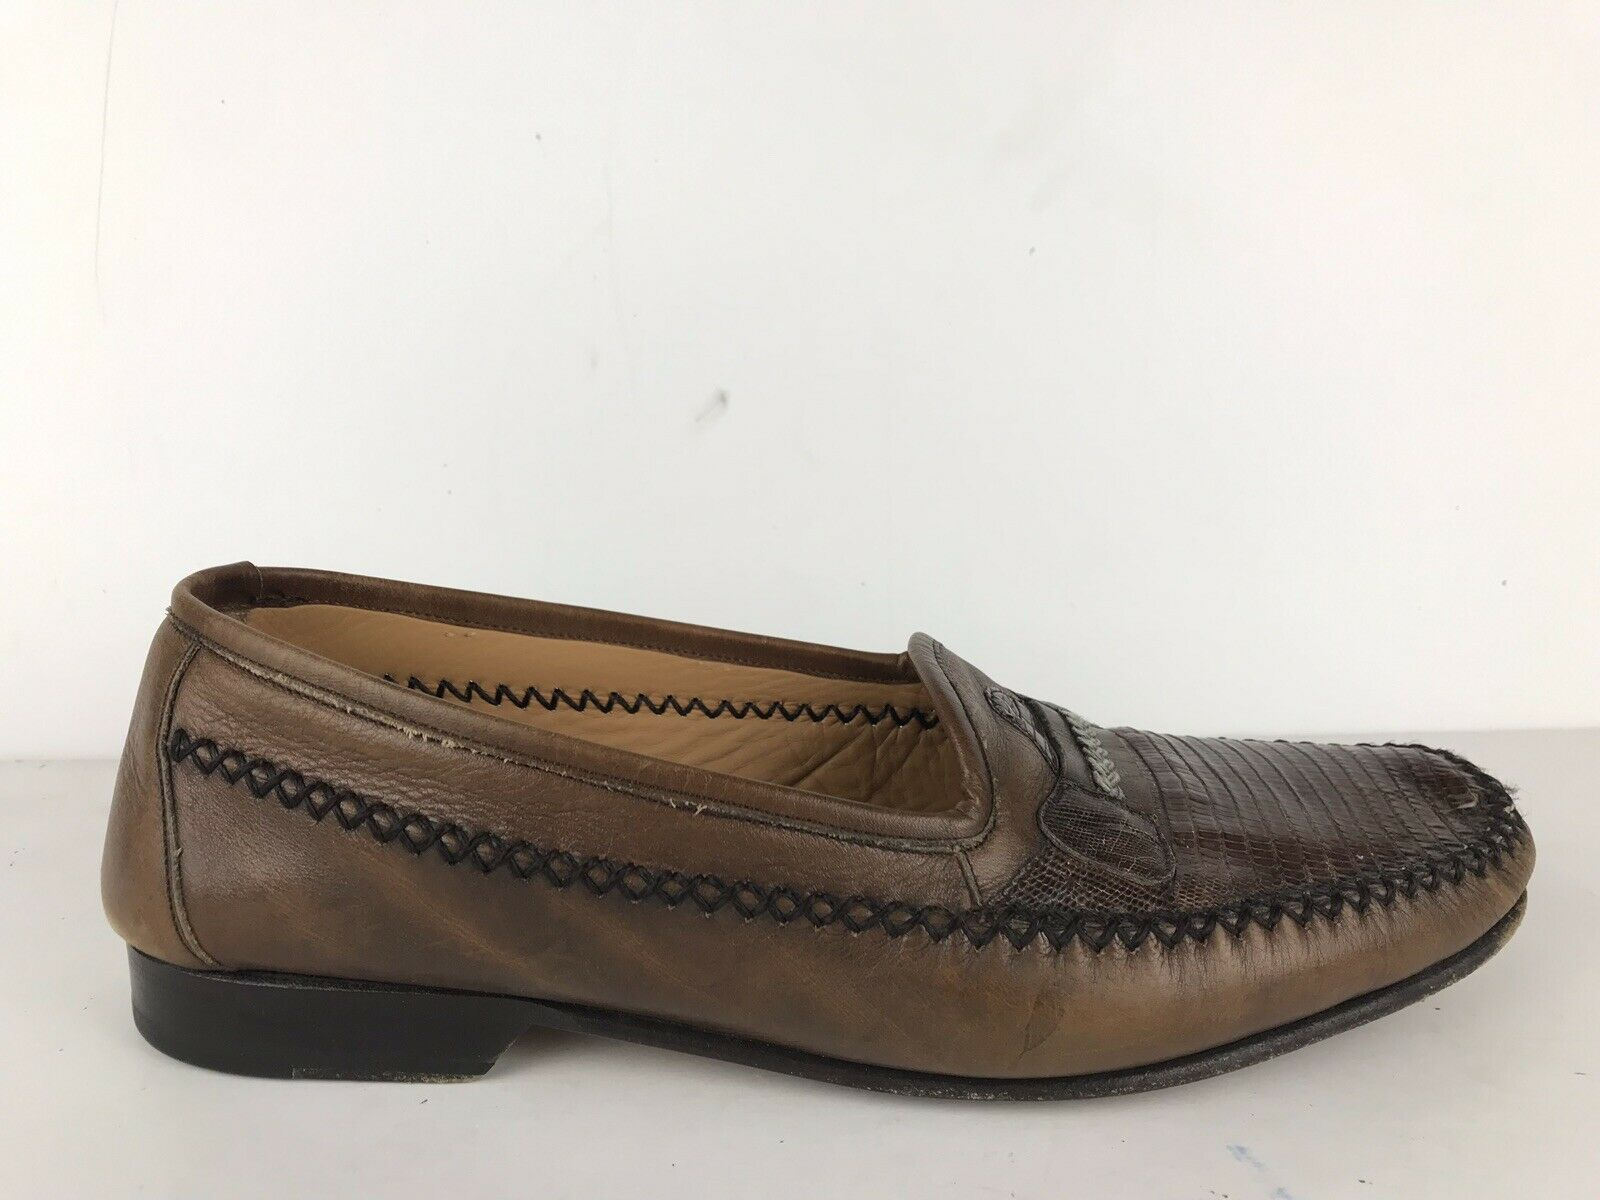 MEZLAN Men's Regan shoes Genuine Lizard Brown Loafers M in Spain SZ 9 M  375